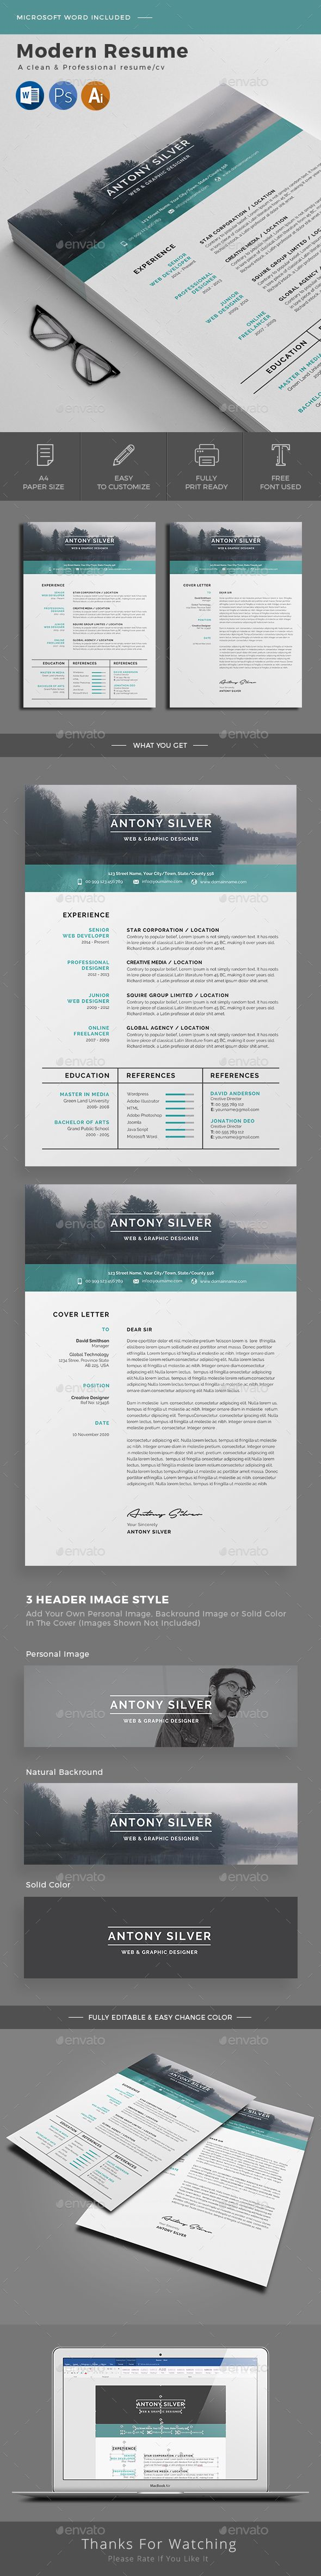 Resume - Resumes Stationery - Download ; https://graphicriver.net/item/resume/20711642?ref=jpixel55